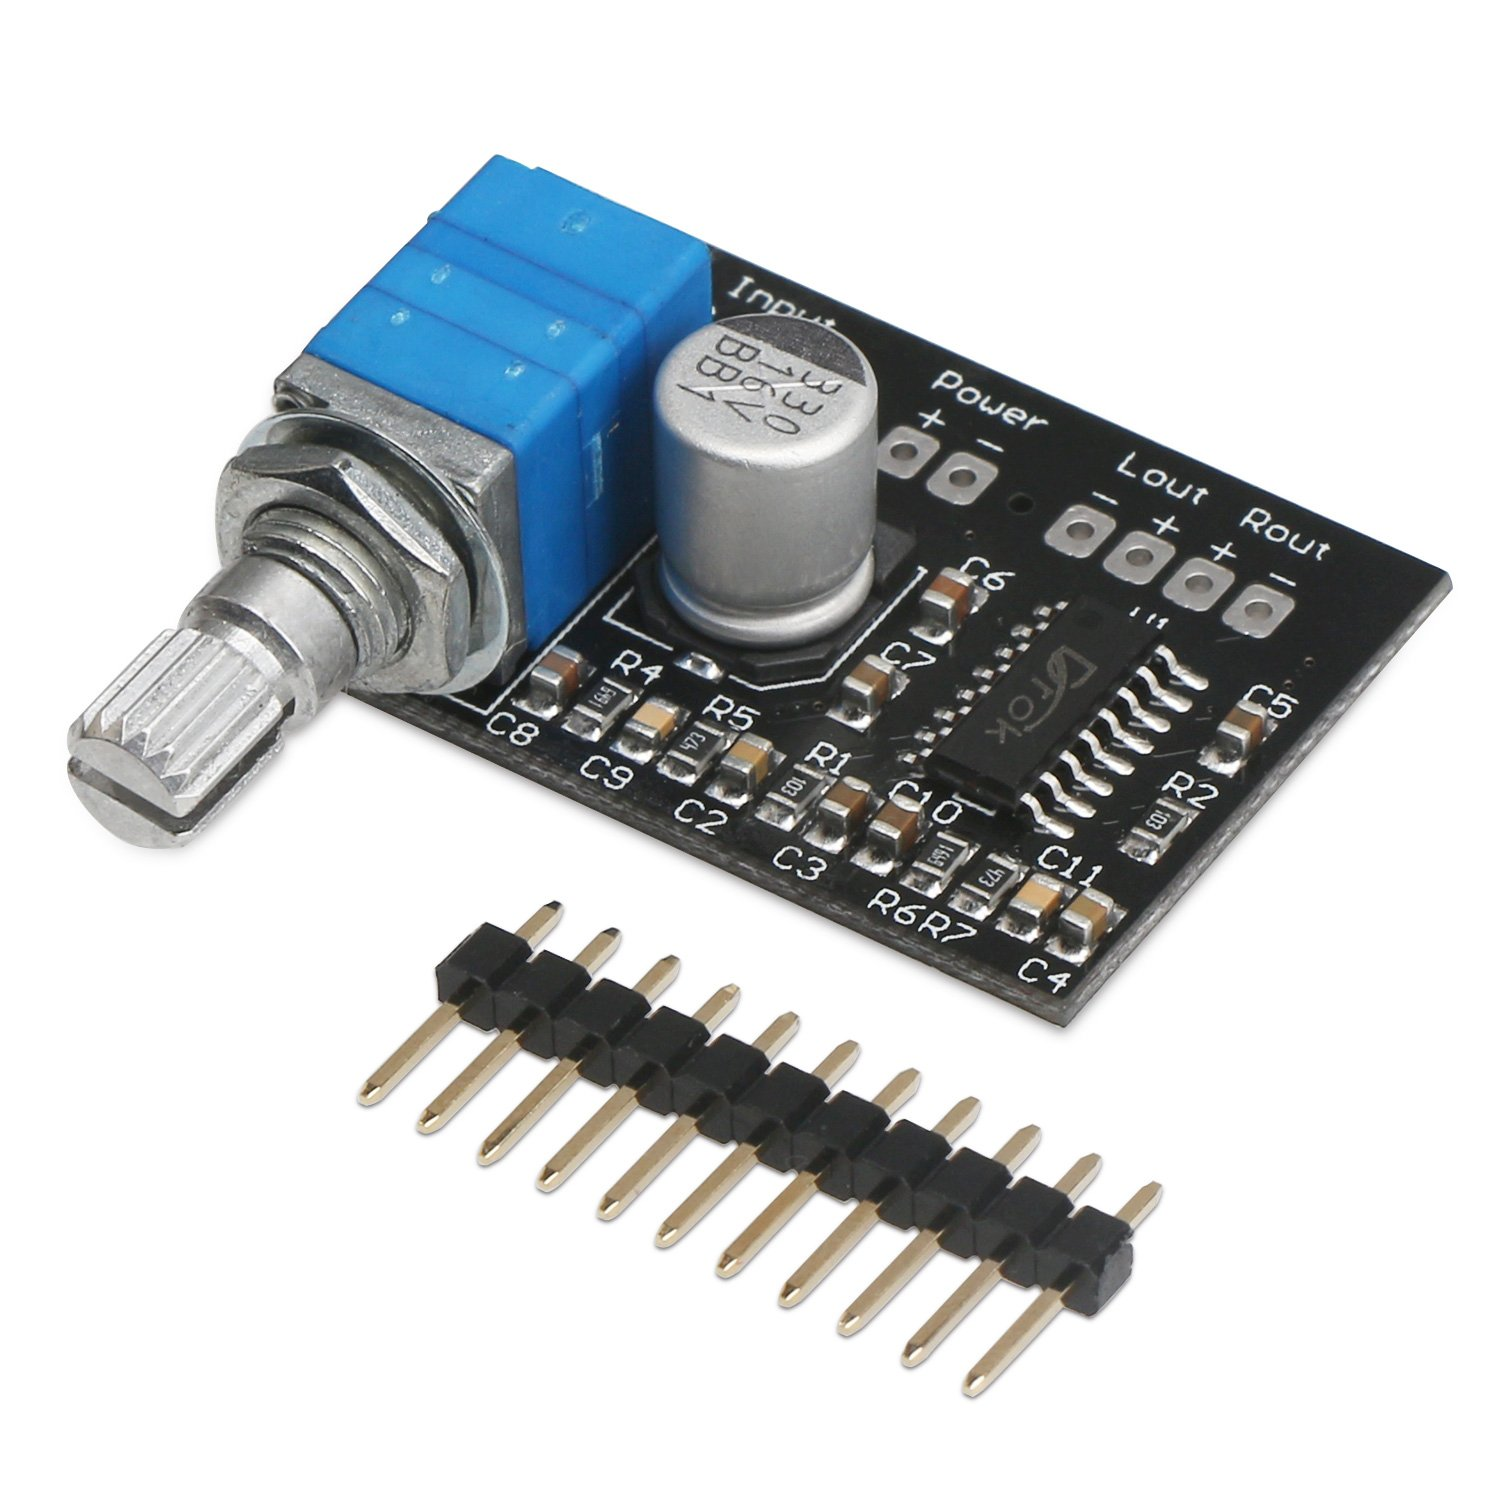 DROK Super Small 3W+3W DC 5V Audio Amplifier Handy Digital Power Amp Module Board Dual-channel PAM8403 Stereo Amplifiers with Potentiometer for DIY portable 90155